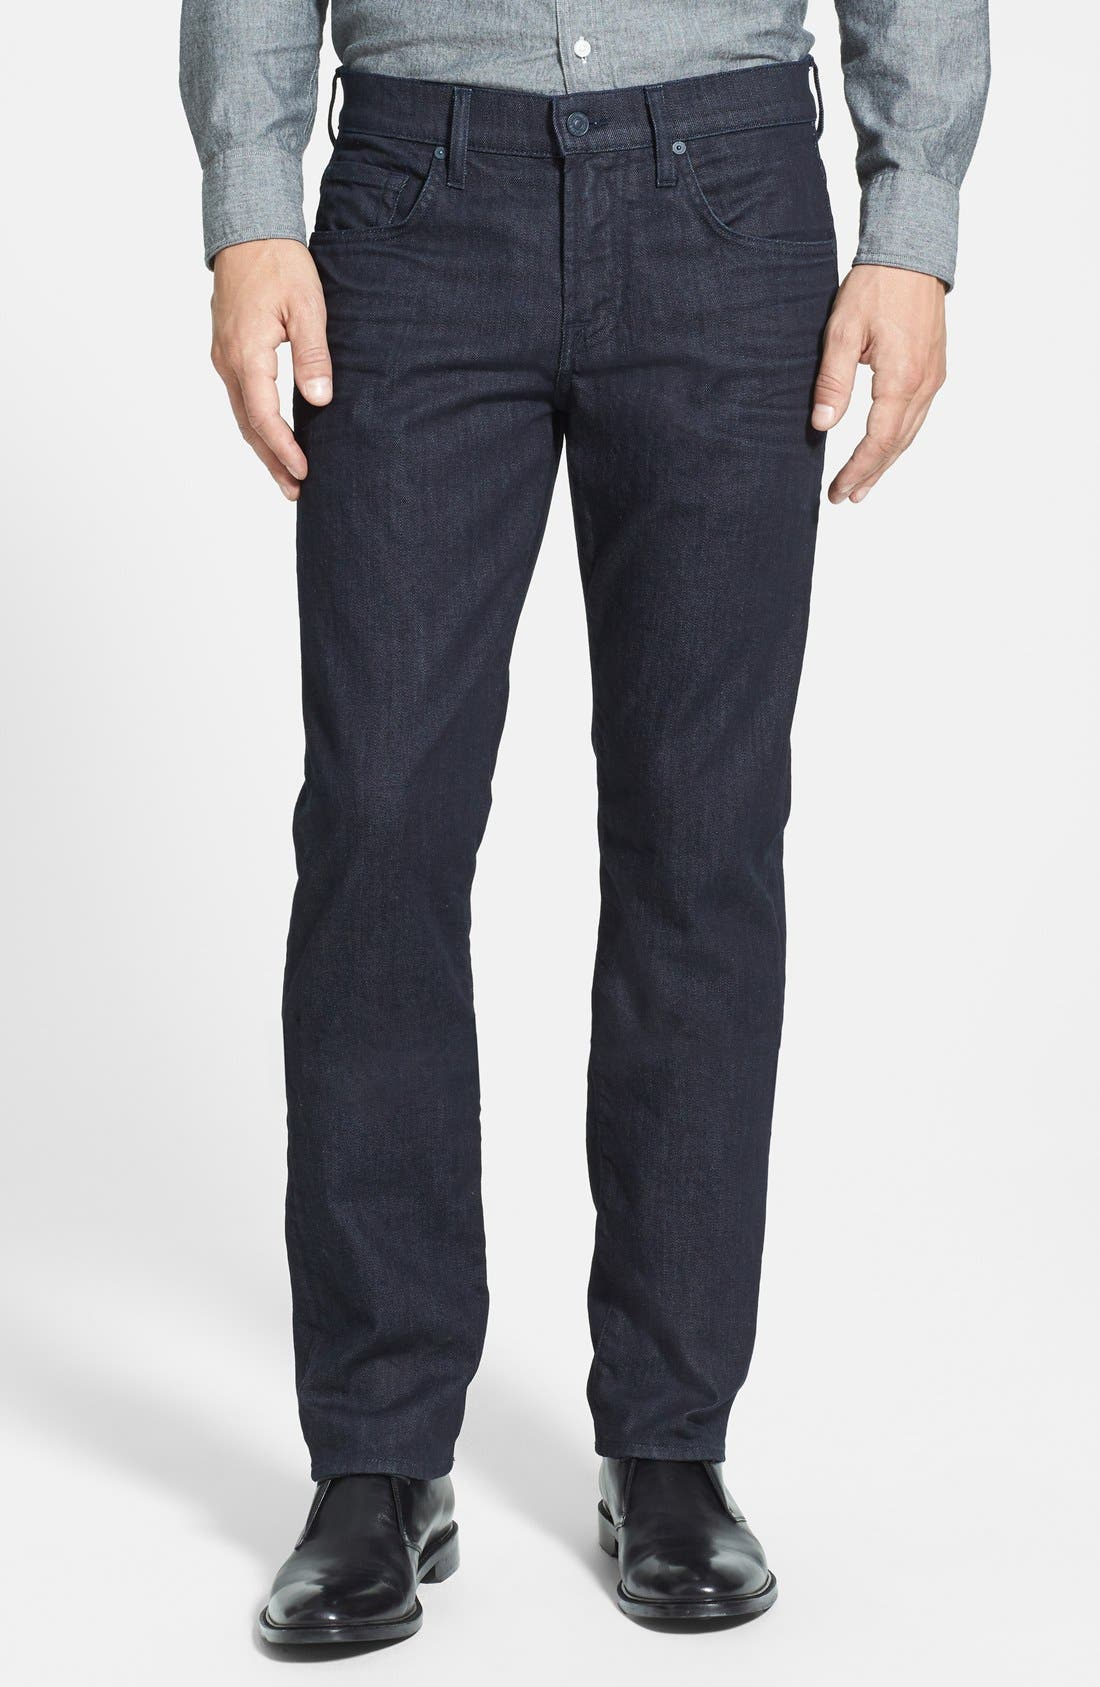 7 FOR ALL MANKIND<SUP>®</SUP>, The Straight - Luxe Performance Slim Straight Leg Jeans, Main thumbnail 1, color, DEEP WELL